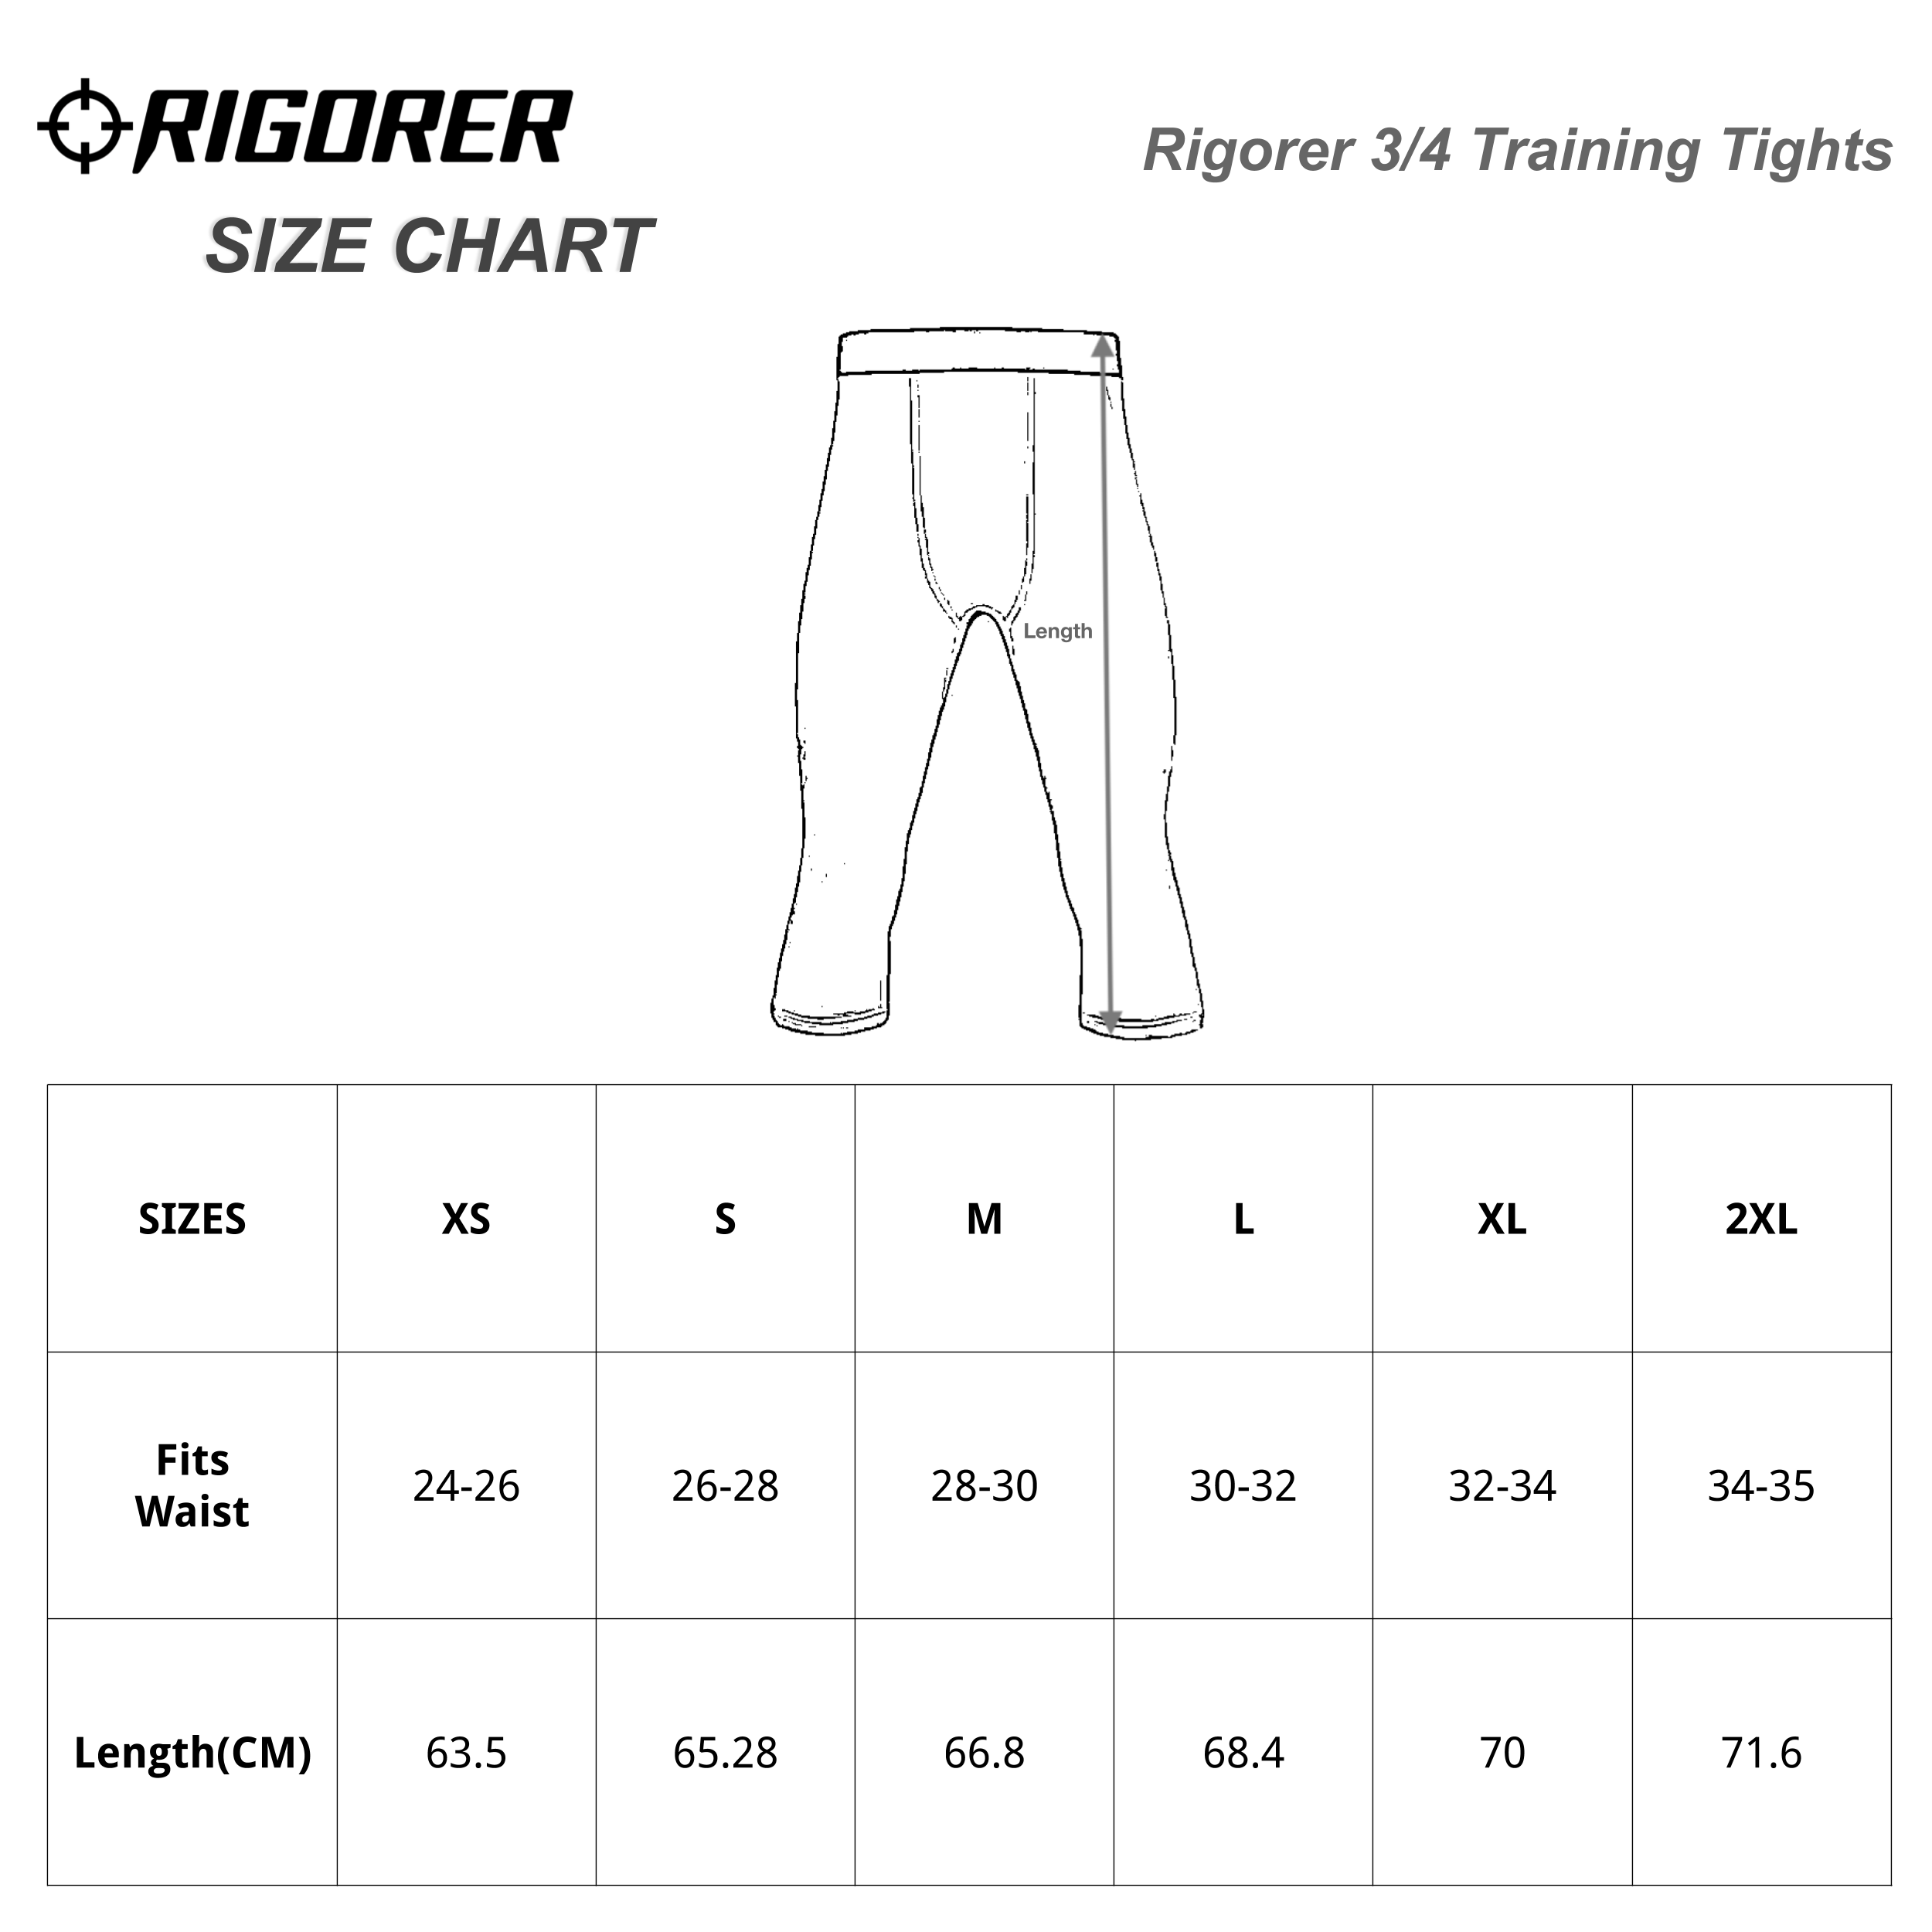 Rigorer 3/4 Training Tights